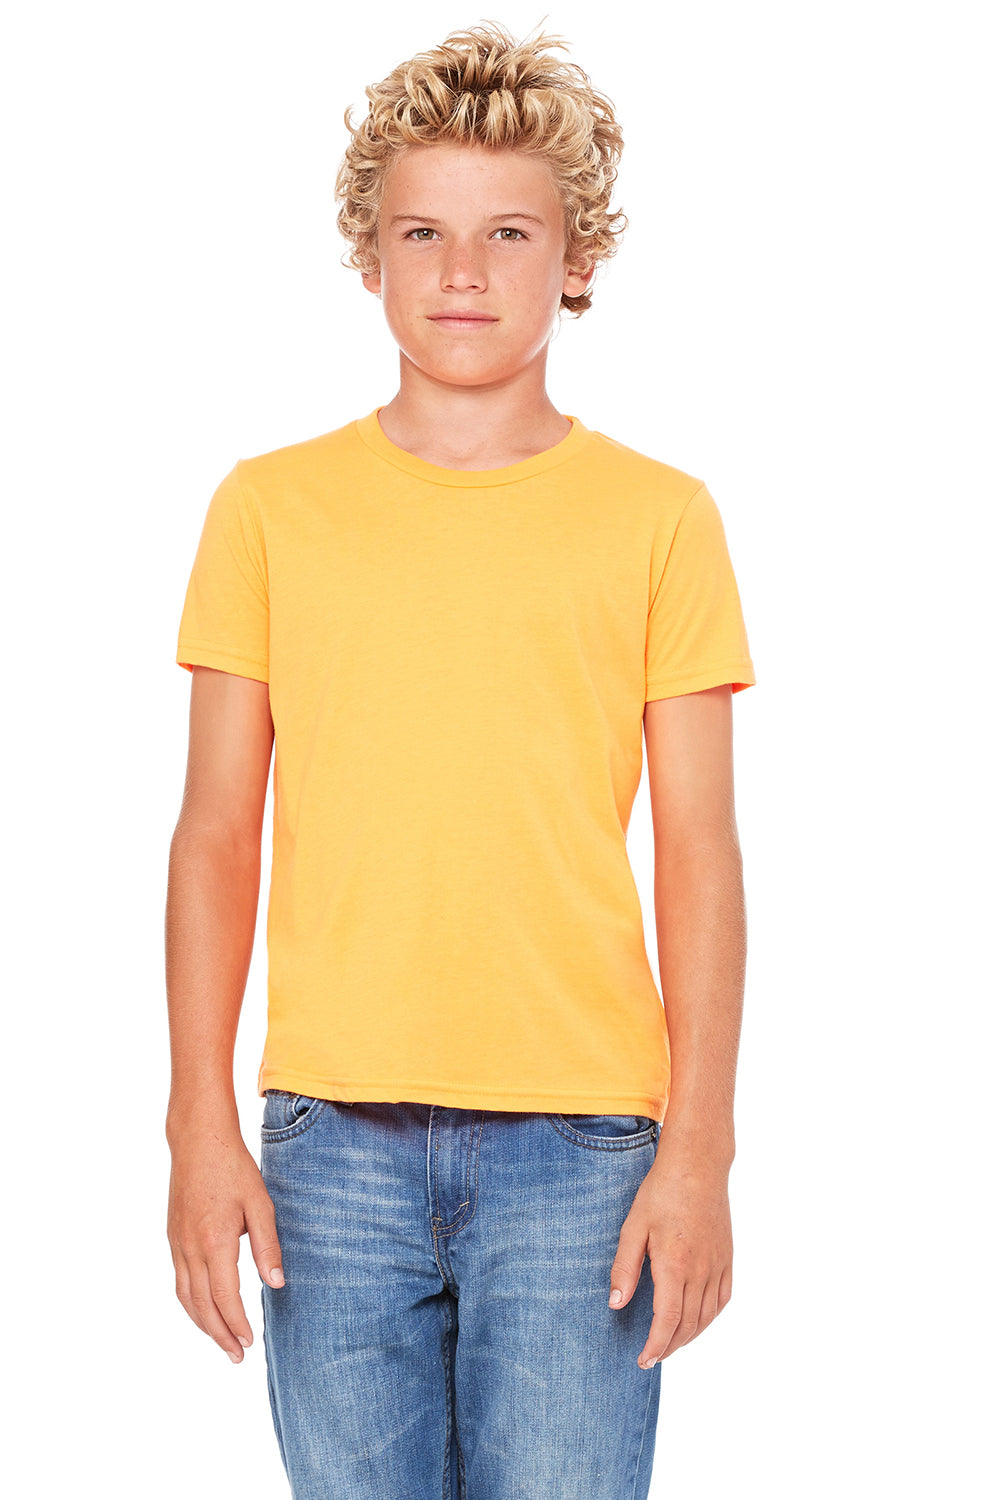 Bella + Canvas 3001Y Youth Jersey Short Sleeve Crewneck T-Shirt Neon Orange Front